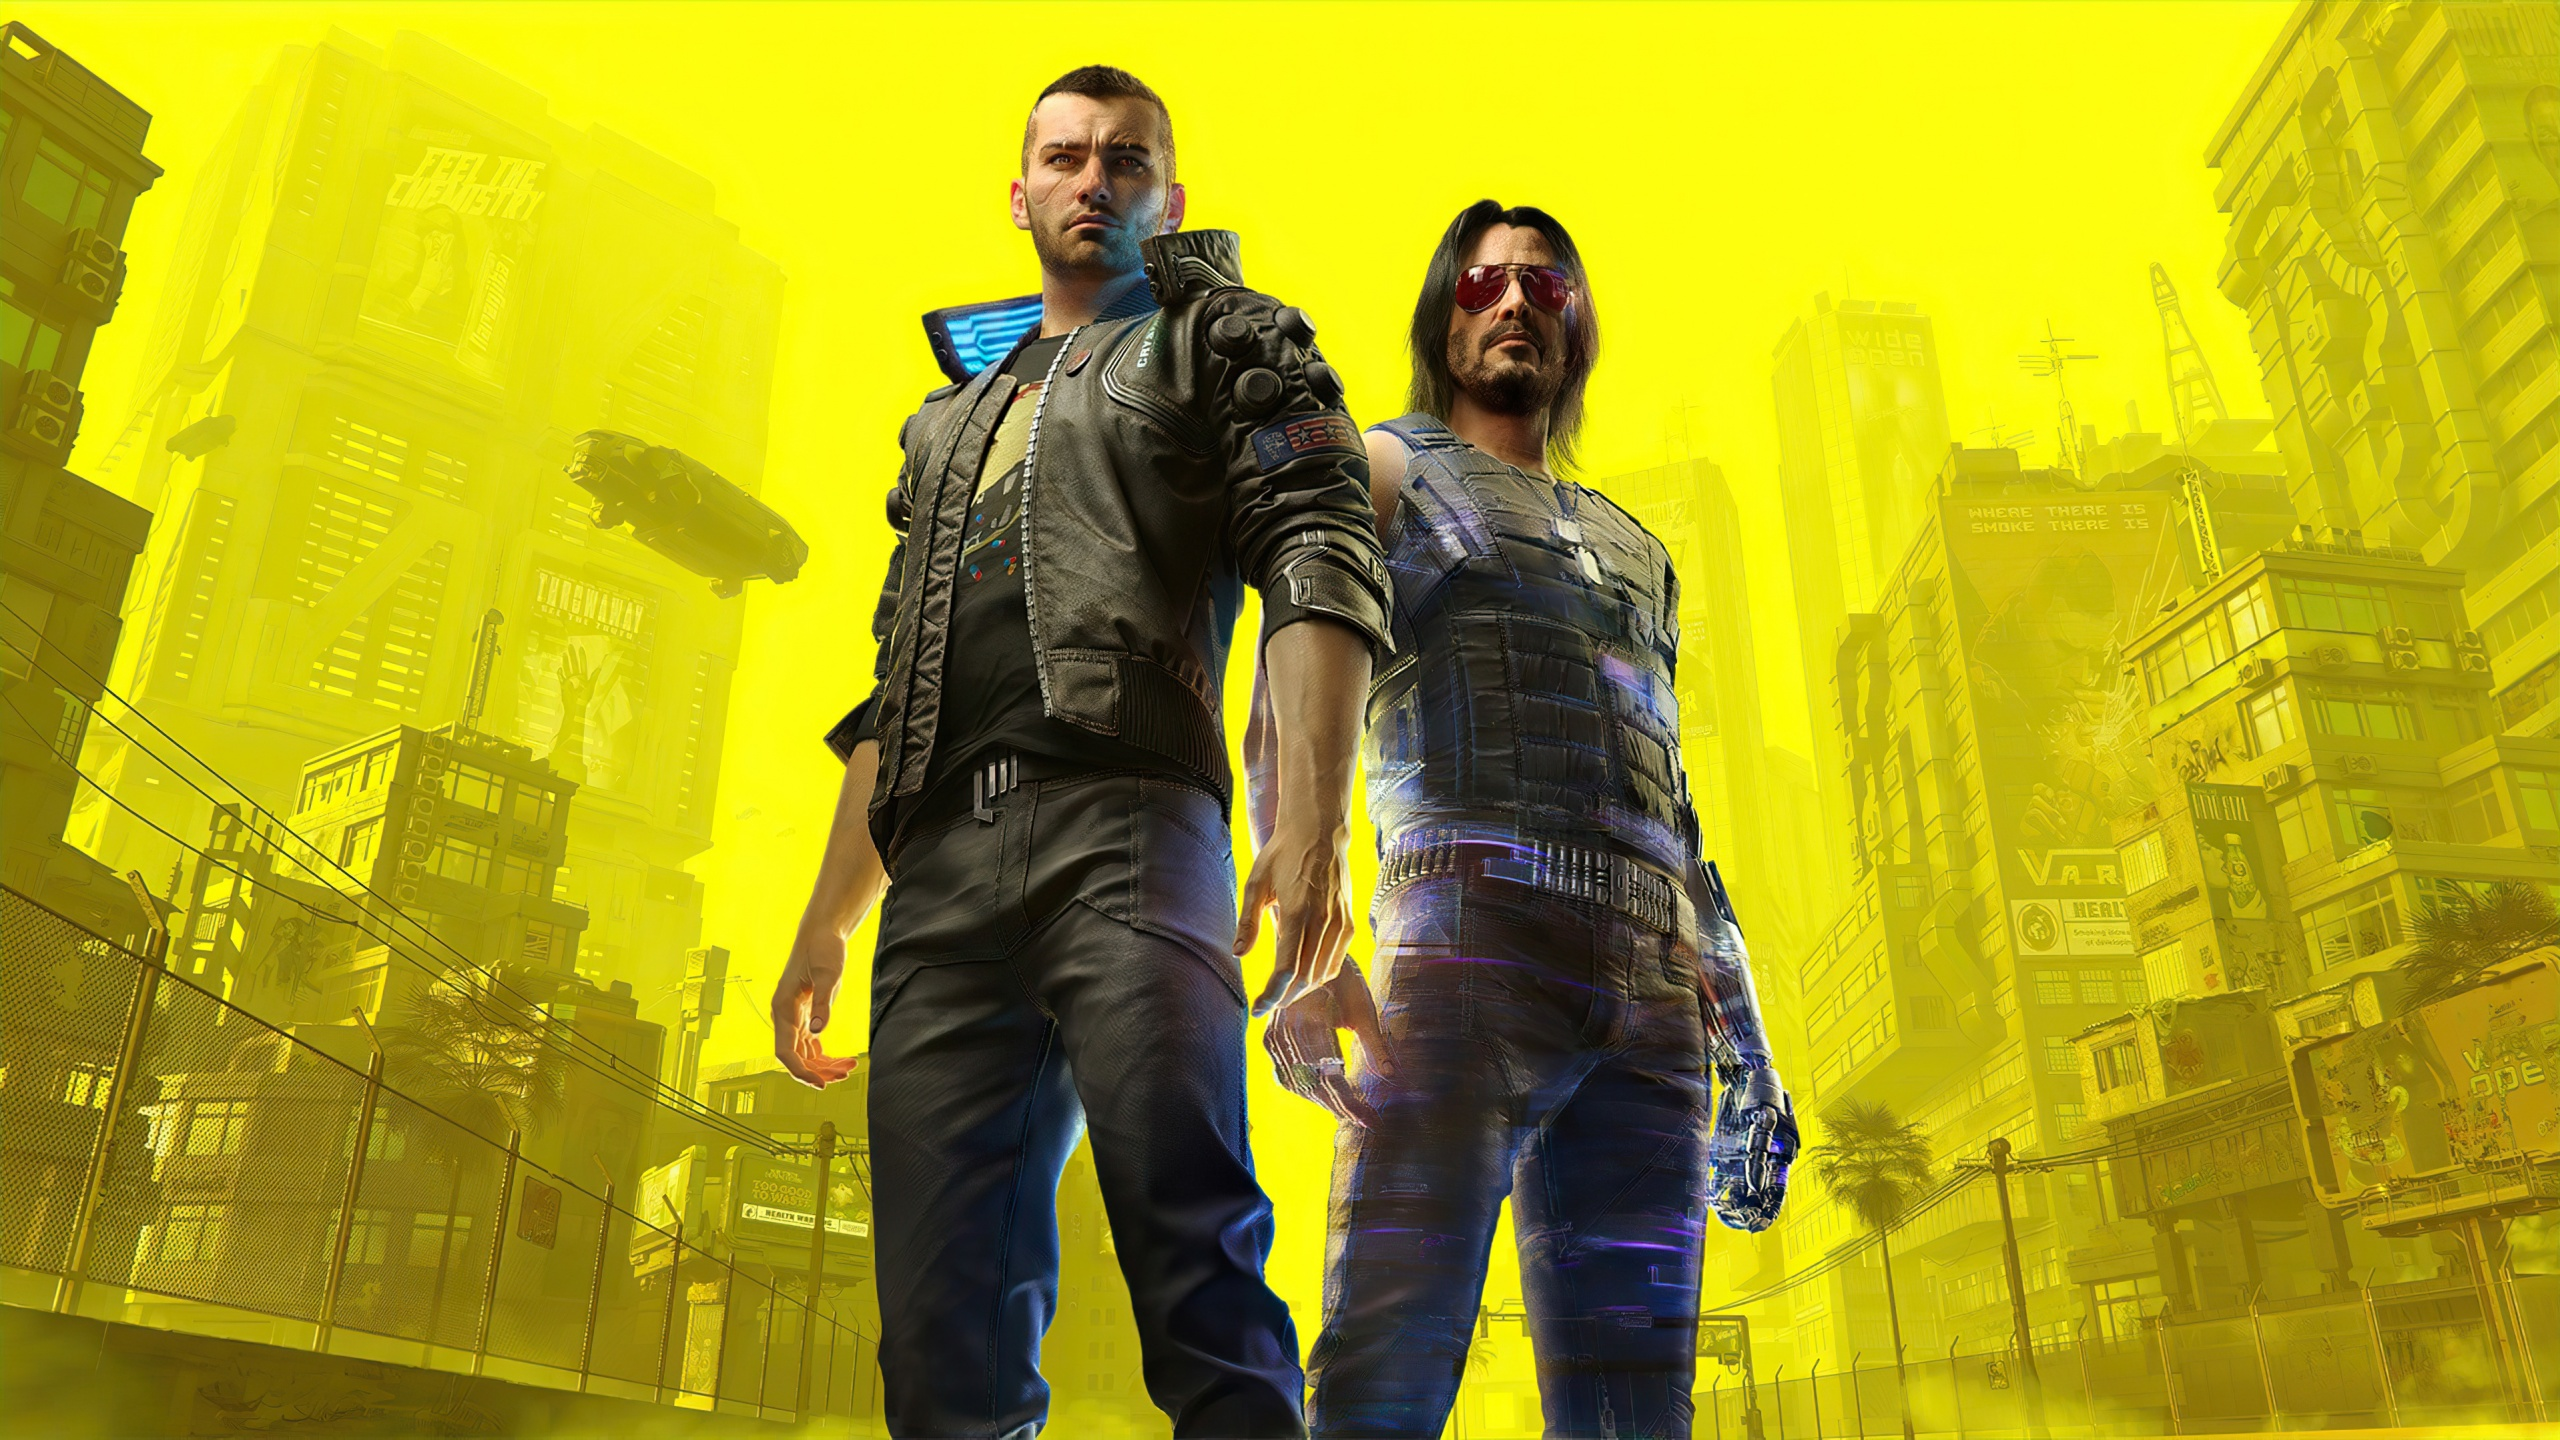 Cyberpunk 2077 4k Wallpaper Johnny Silverhand Character V Xbox Series X Xbox One Playstation 4 Games 1617